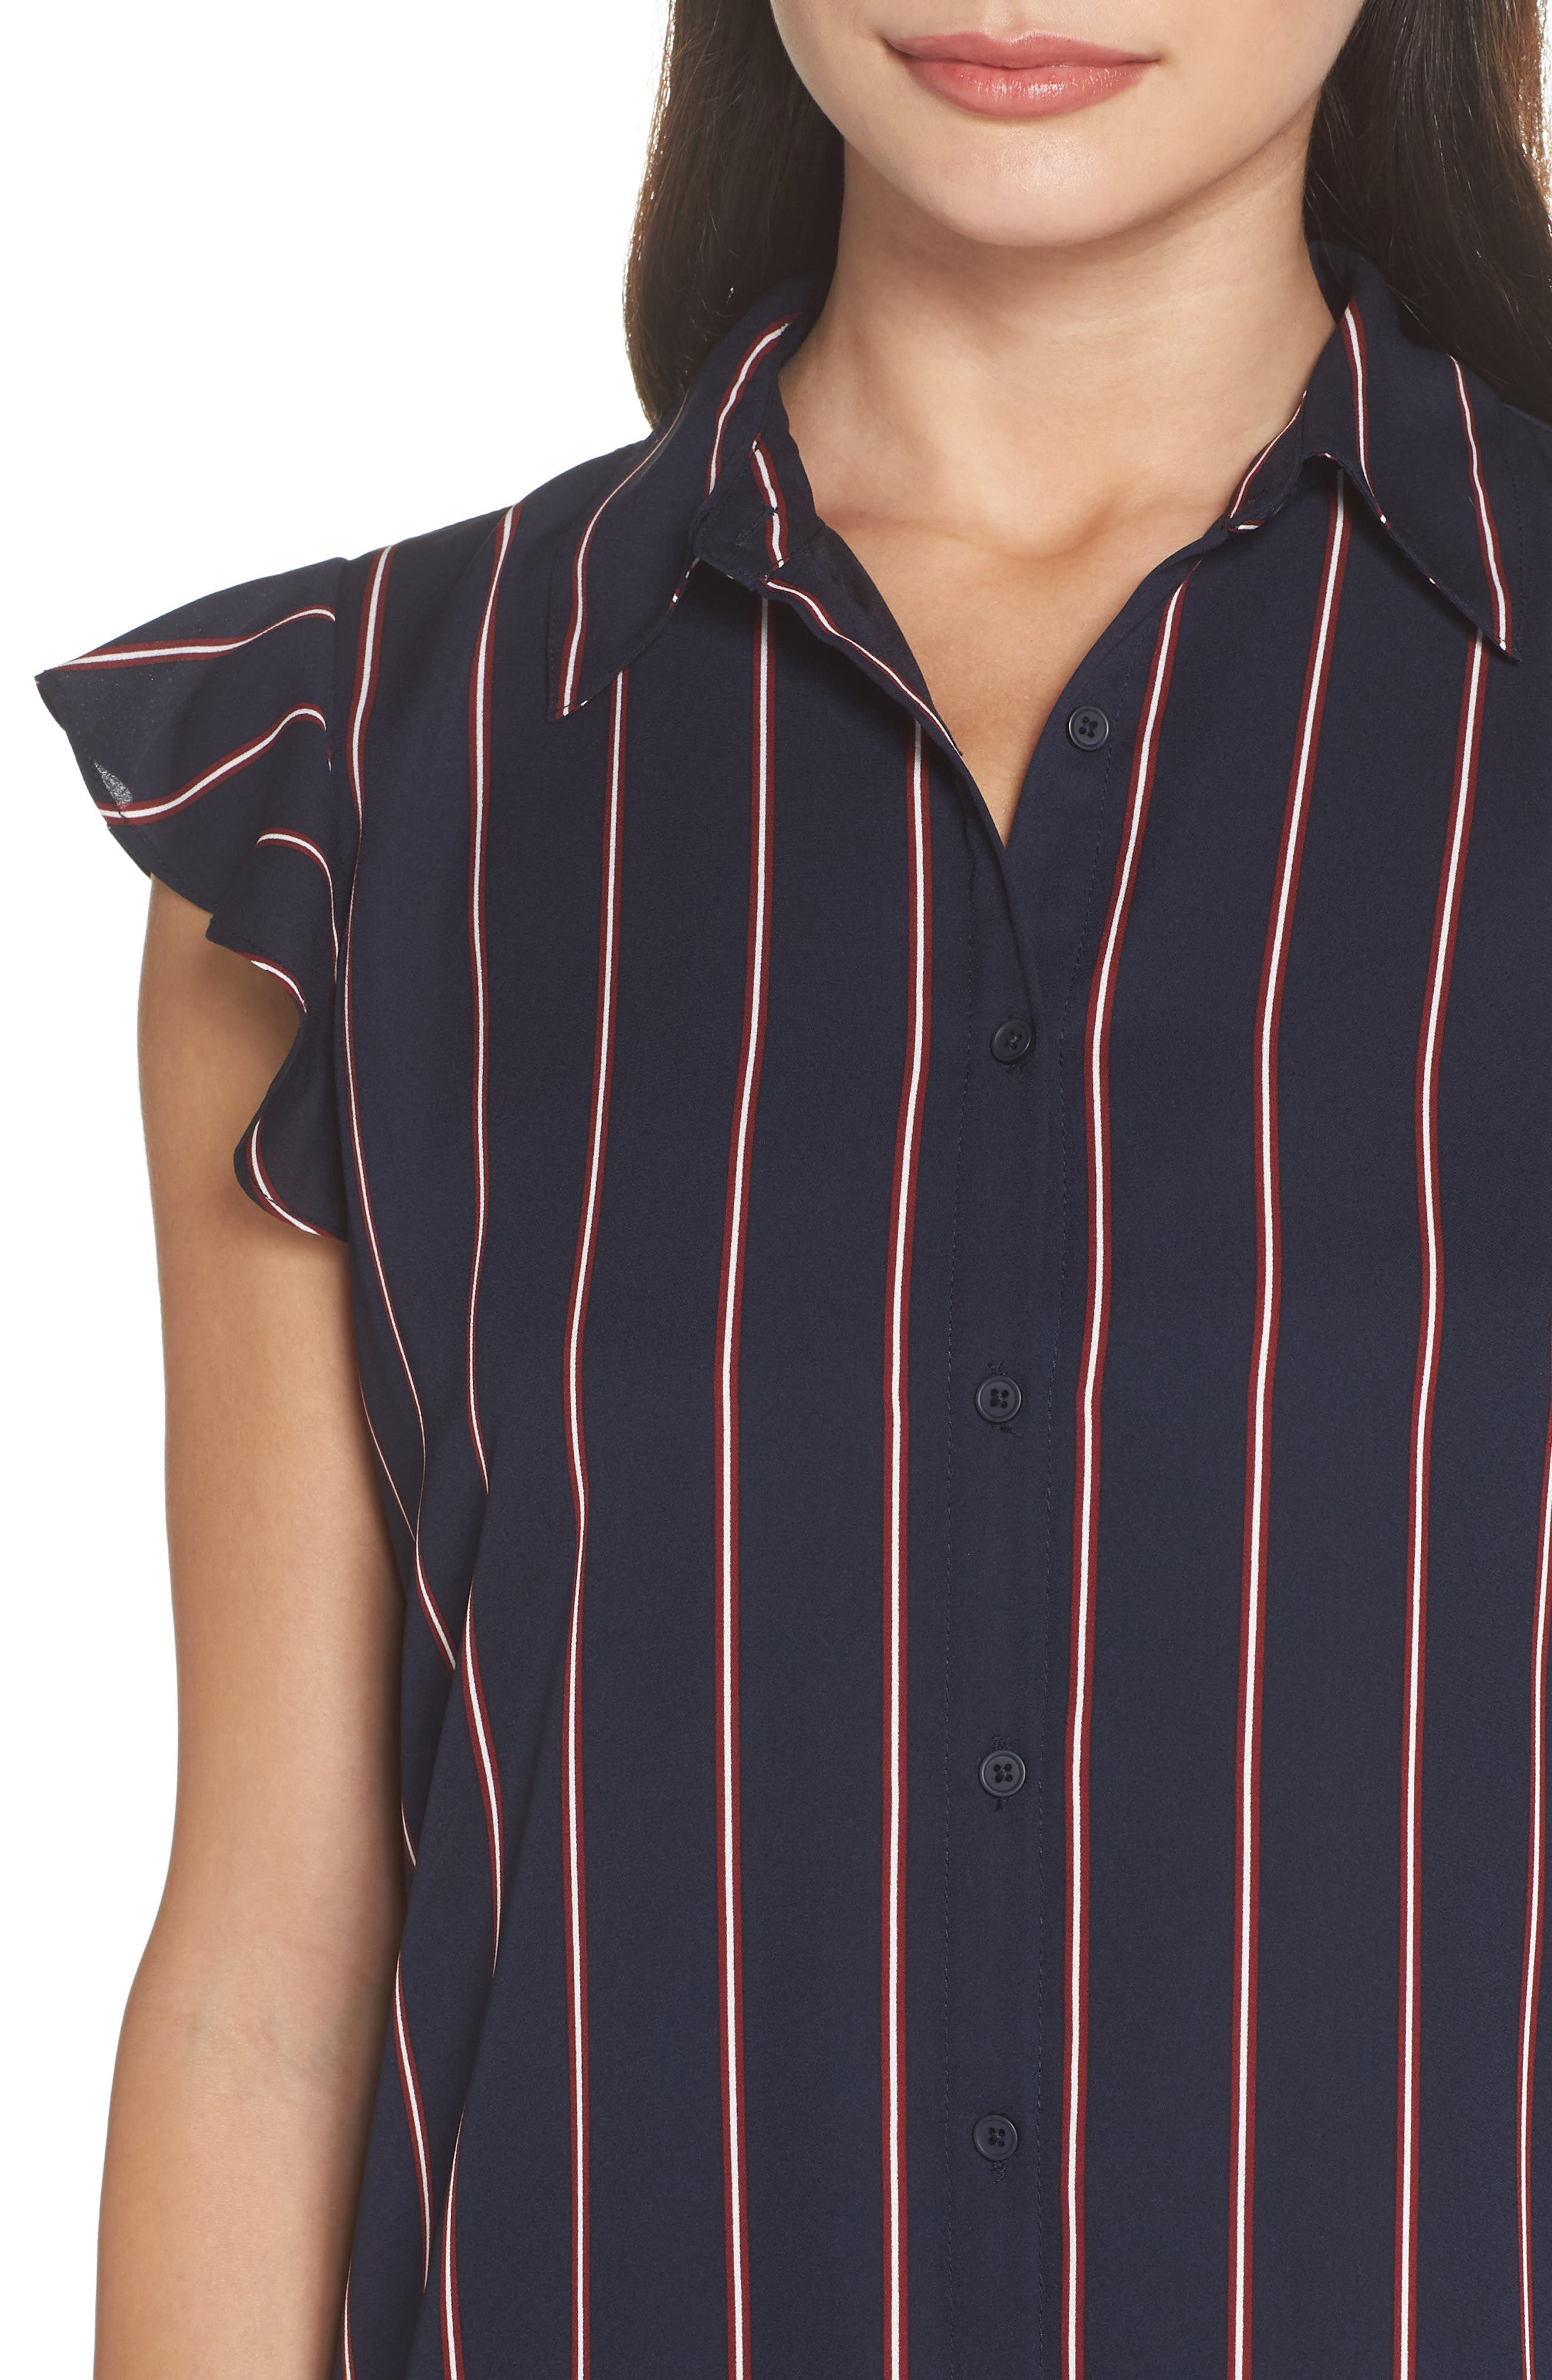 BB DAKOTA, American Pie Stripe Shirtdress, Alternate thumbnail 5, color, MIDNIGHT SKY